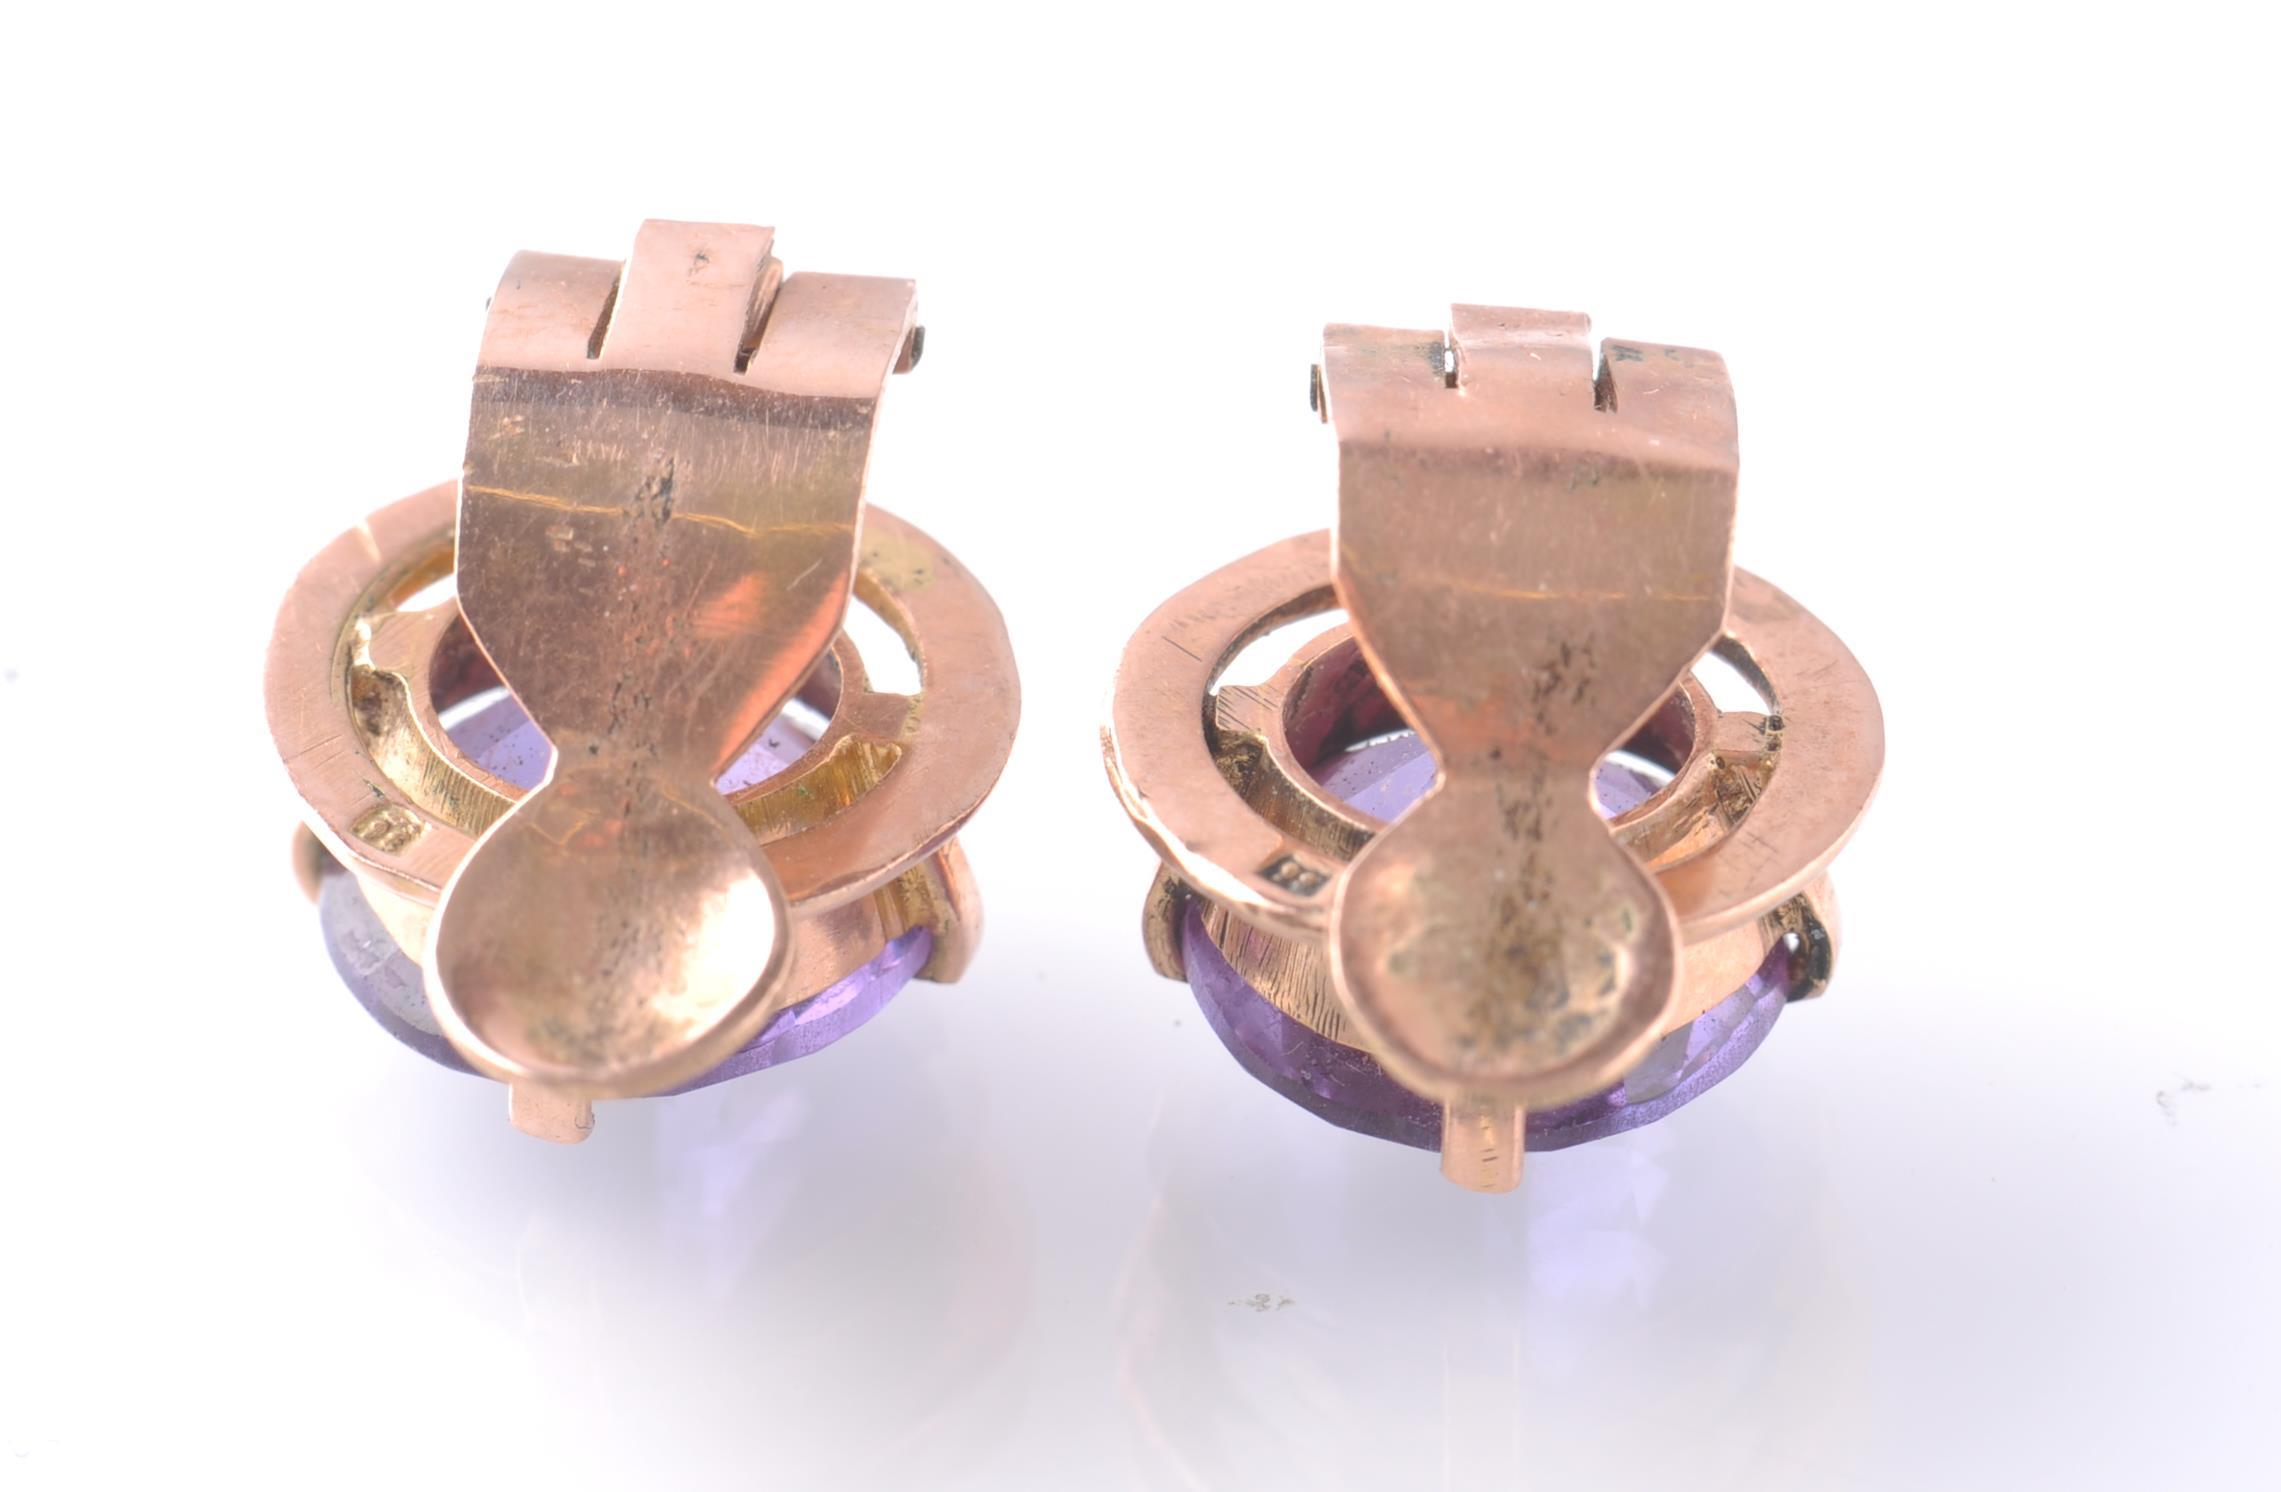 A PAIR OF 14CT ROSE GOLD & SAPPHIRE EAR CLIPS - Image 3 of 3